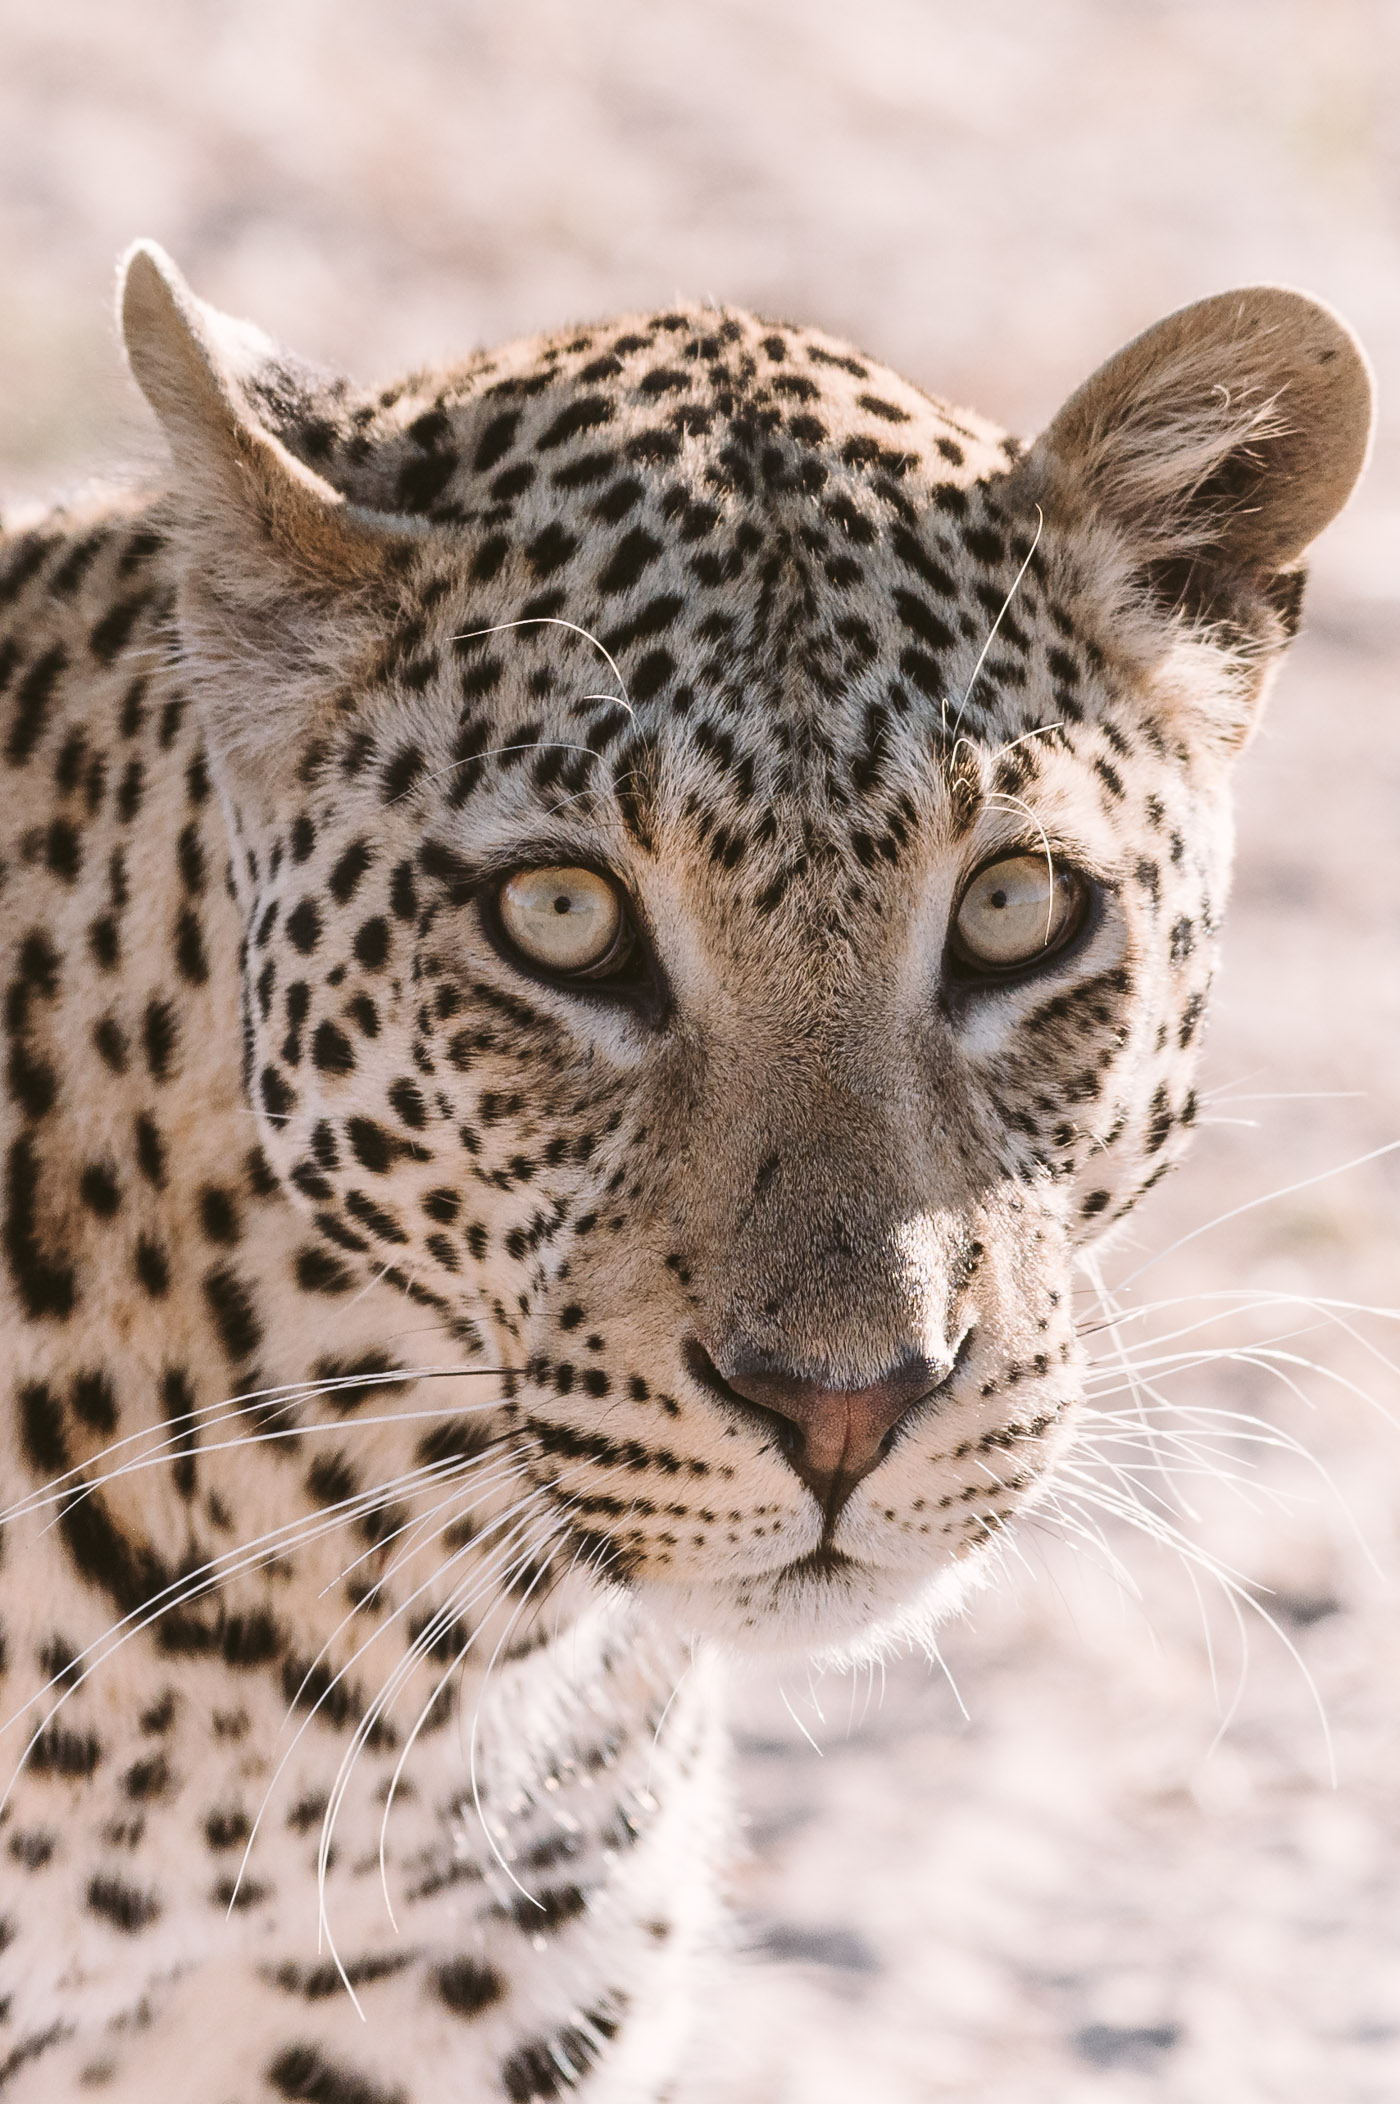 Leopard in Chobe National Park